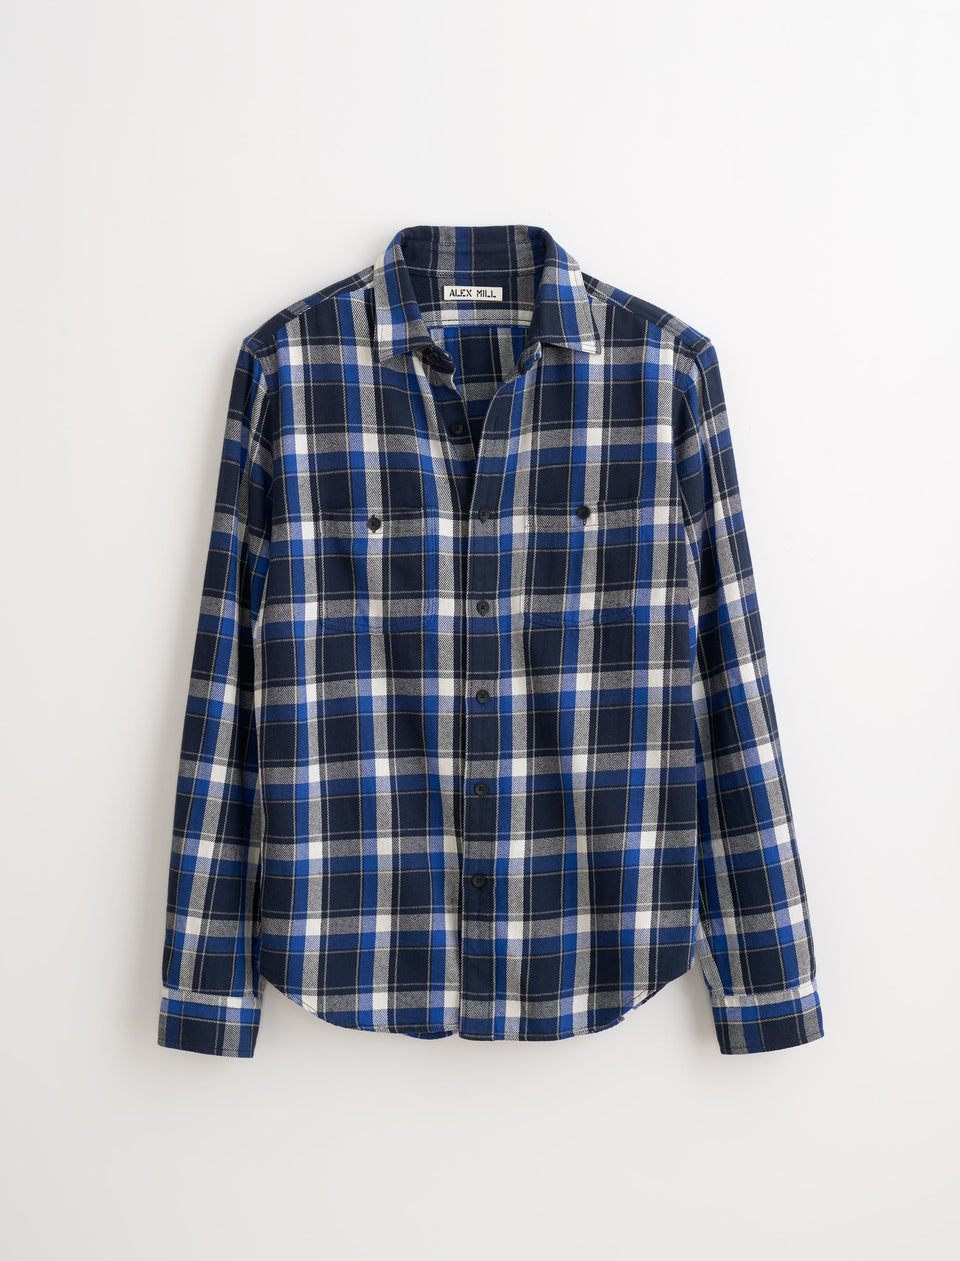 4e0c6aedb21 Navy Blue And White Plaid Shirt – EDGE Engineering and Consulting ...